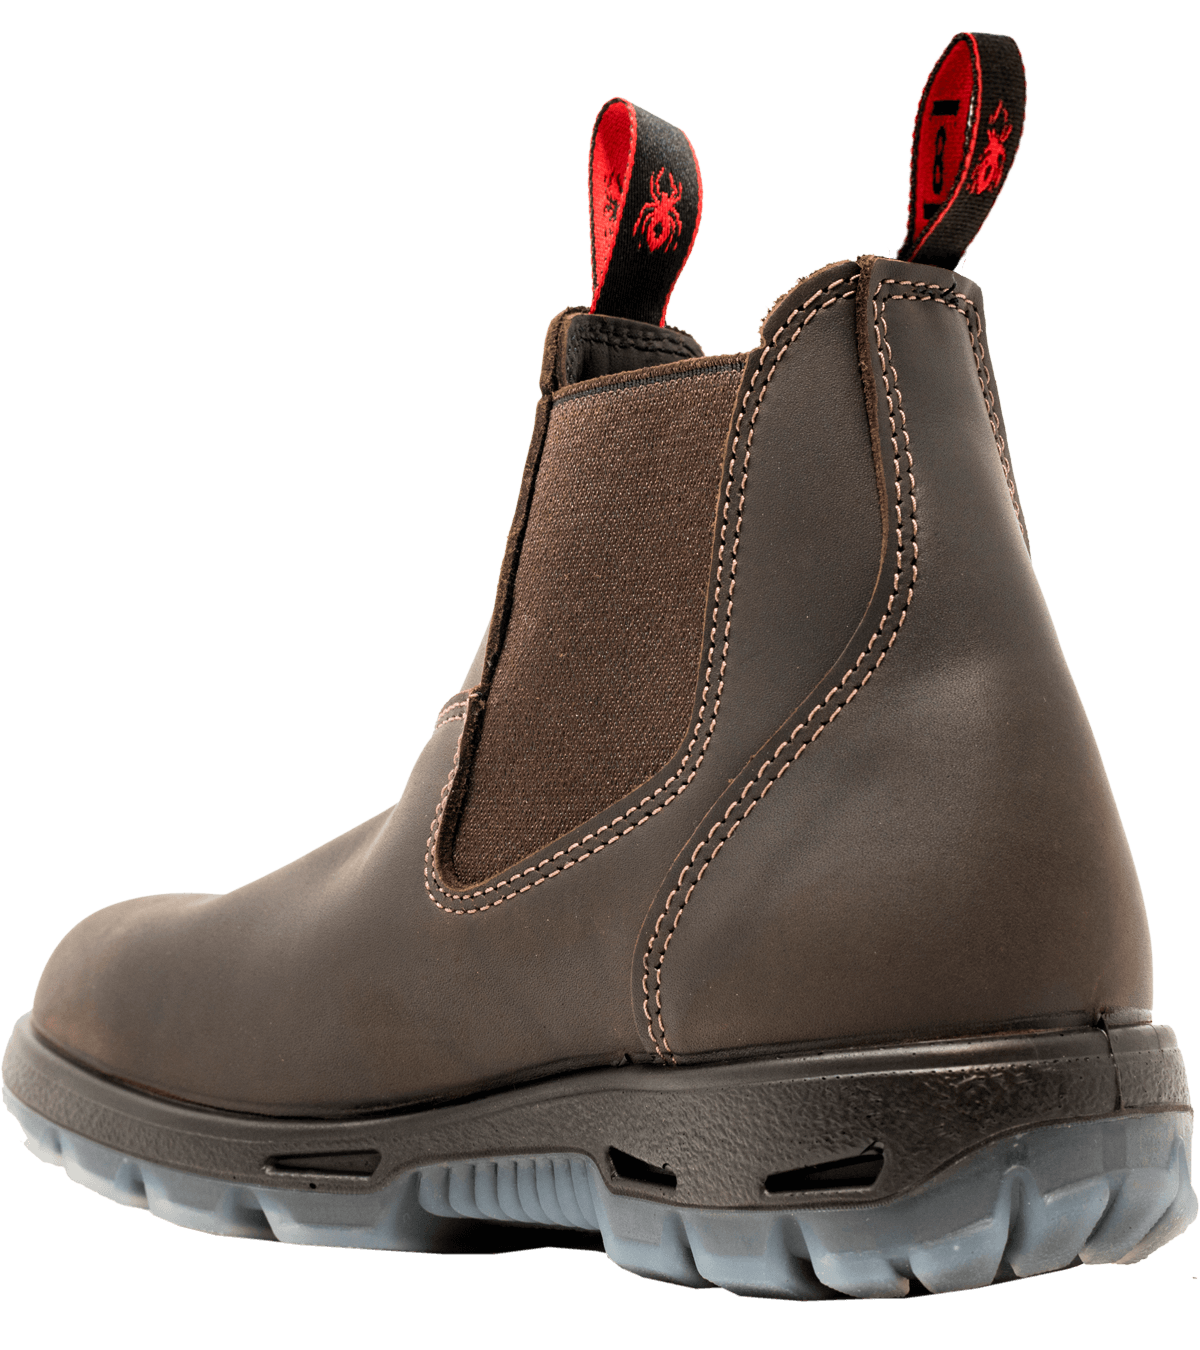 Great Barrier Redback Boots Boots Redback Boots Chelsea Boots